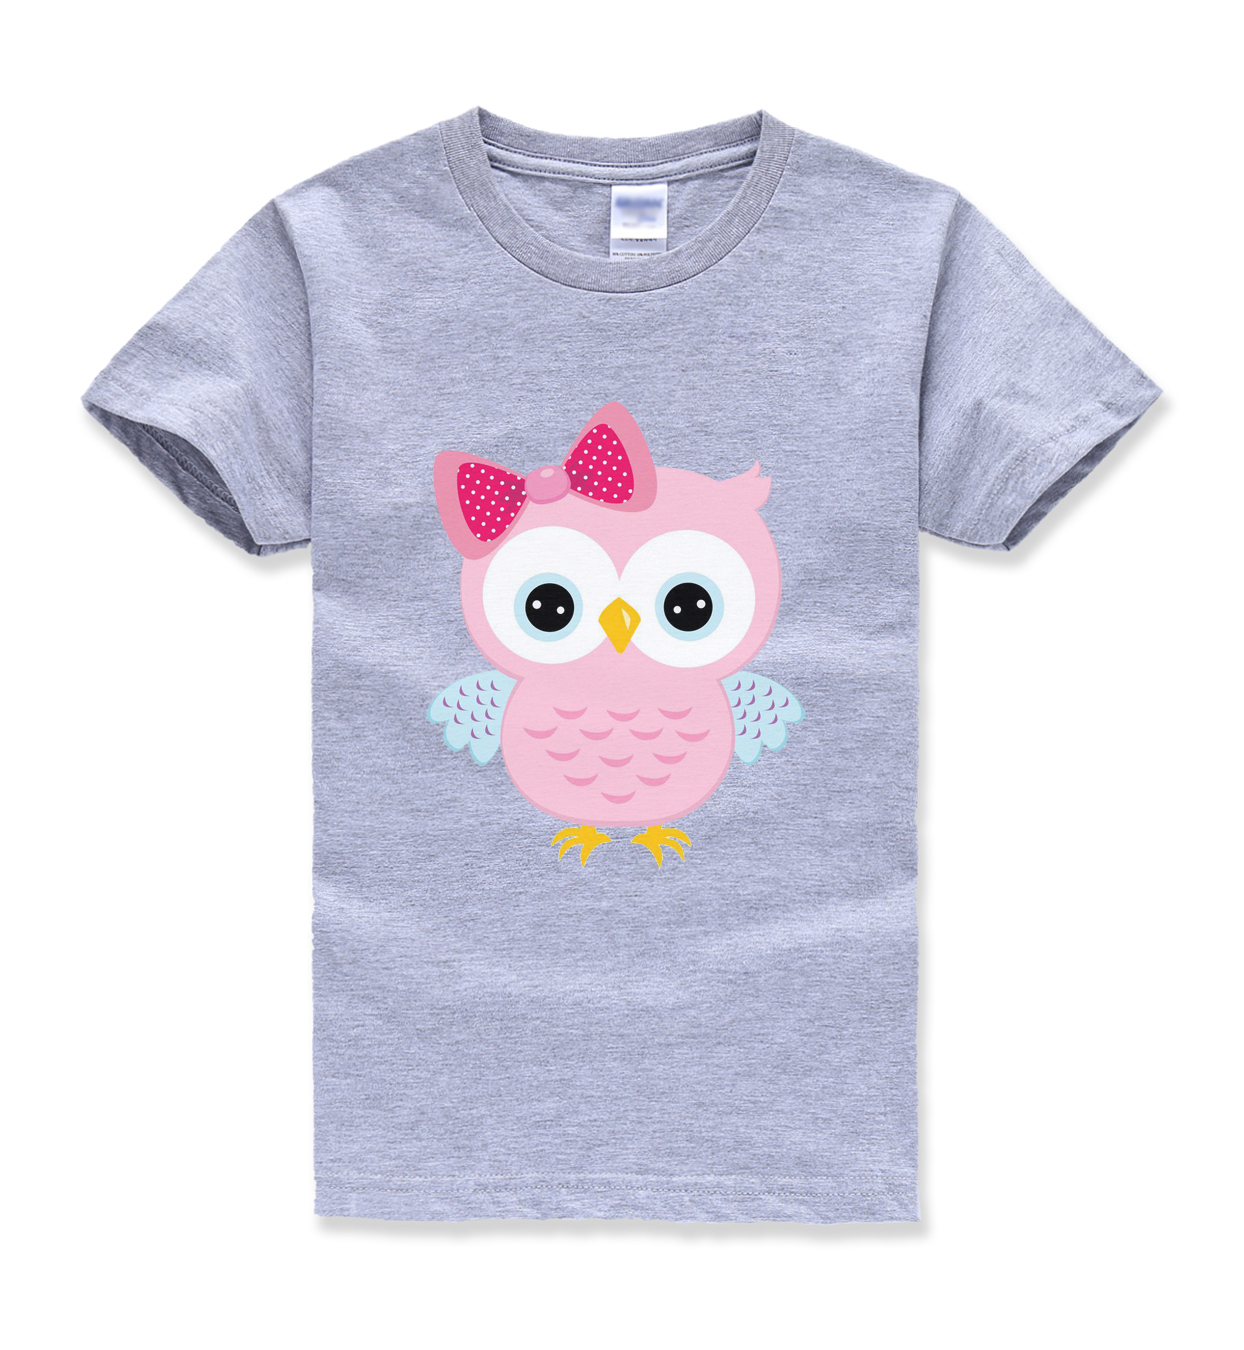 bird printing kids short sleeve t shirts streetwear homme summer t shirt 2018 casual o neck t-shirt children baby girl clothes футболка для девочки t shirt 2015 t t 2 6 girl t shirt